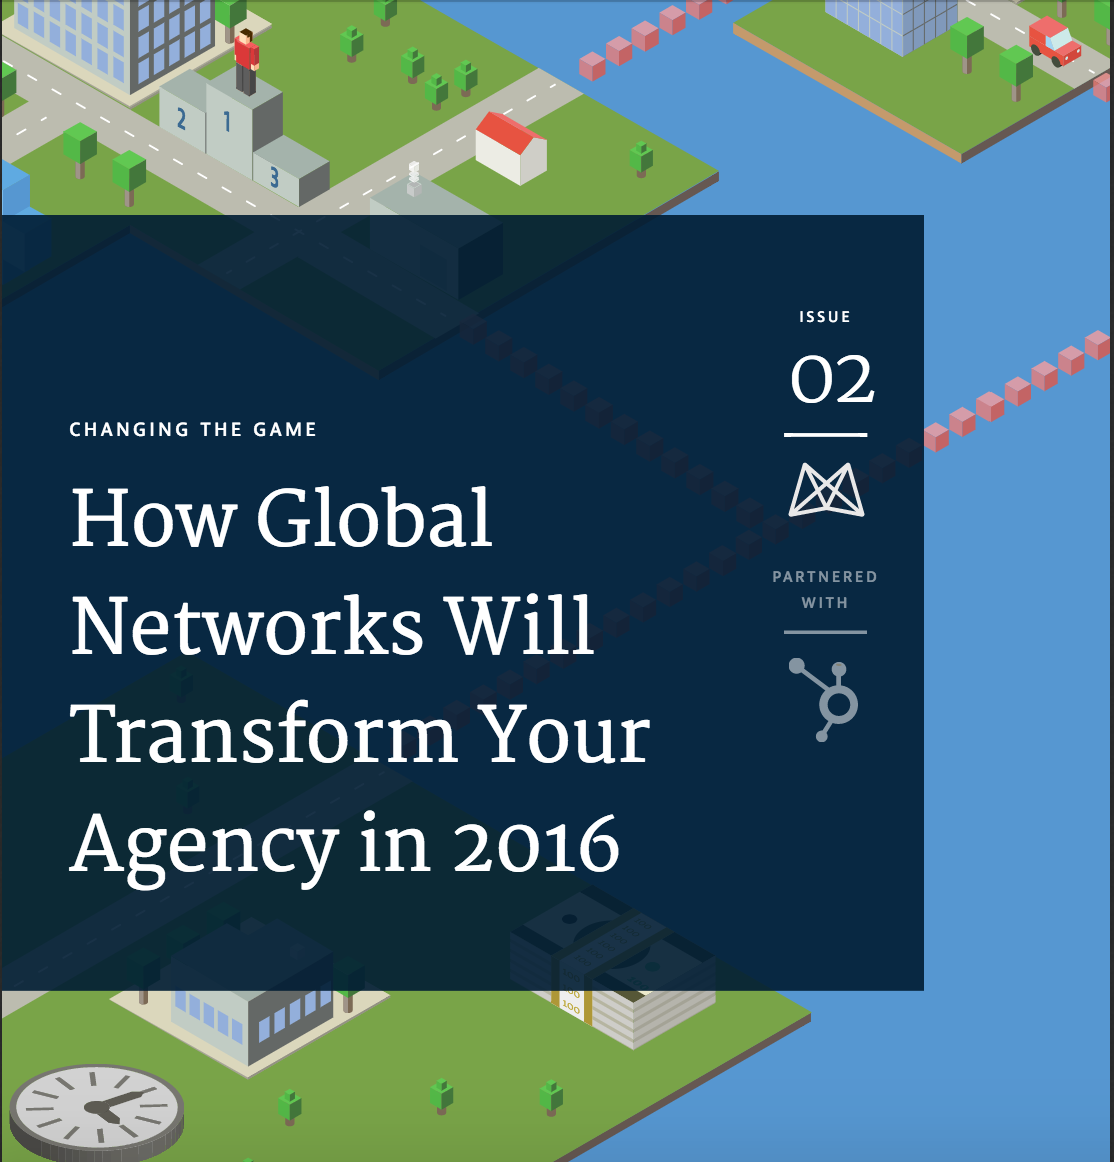 2016-agency-ebook-cover.png